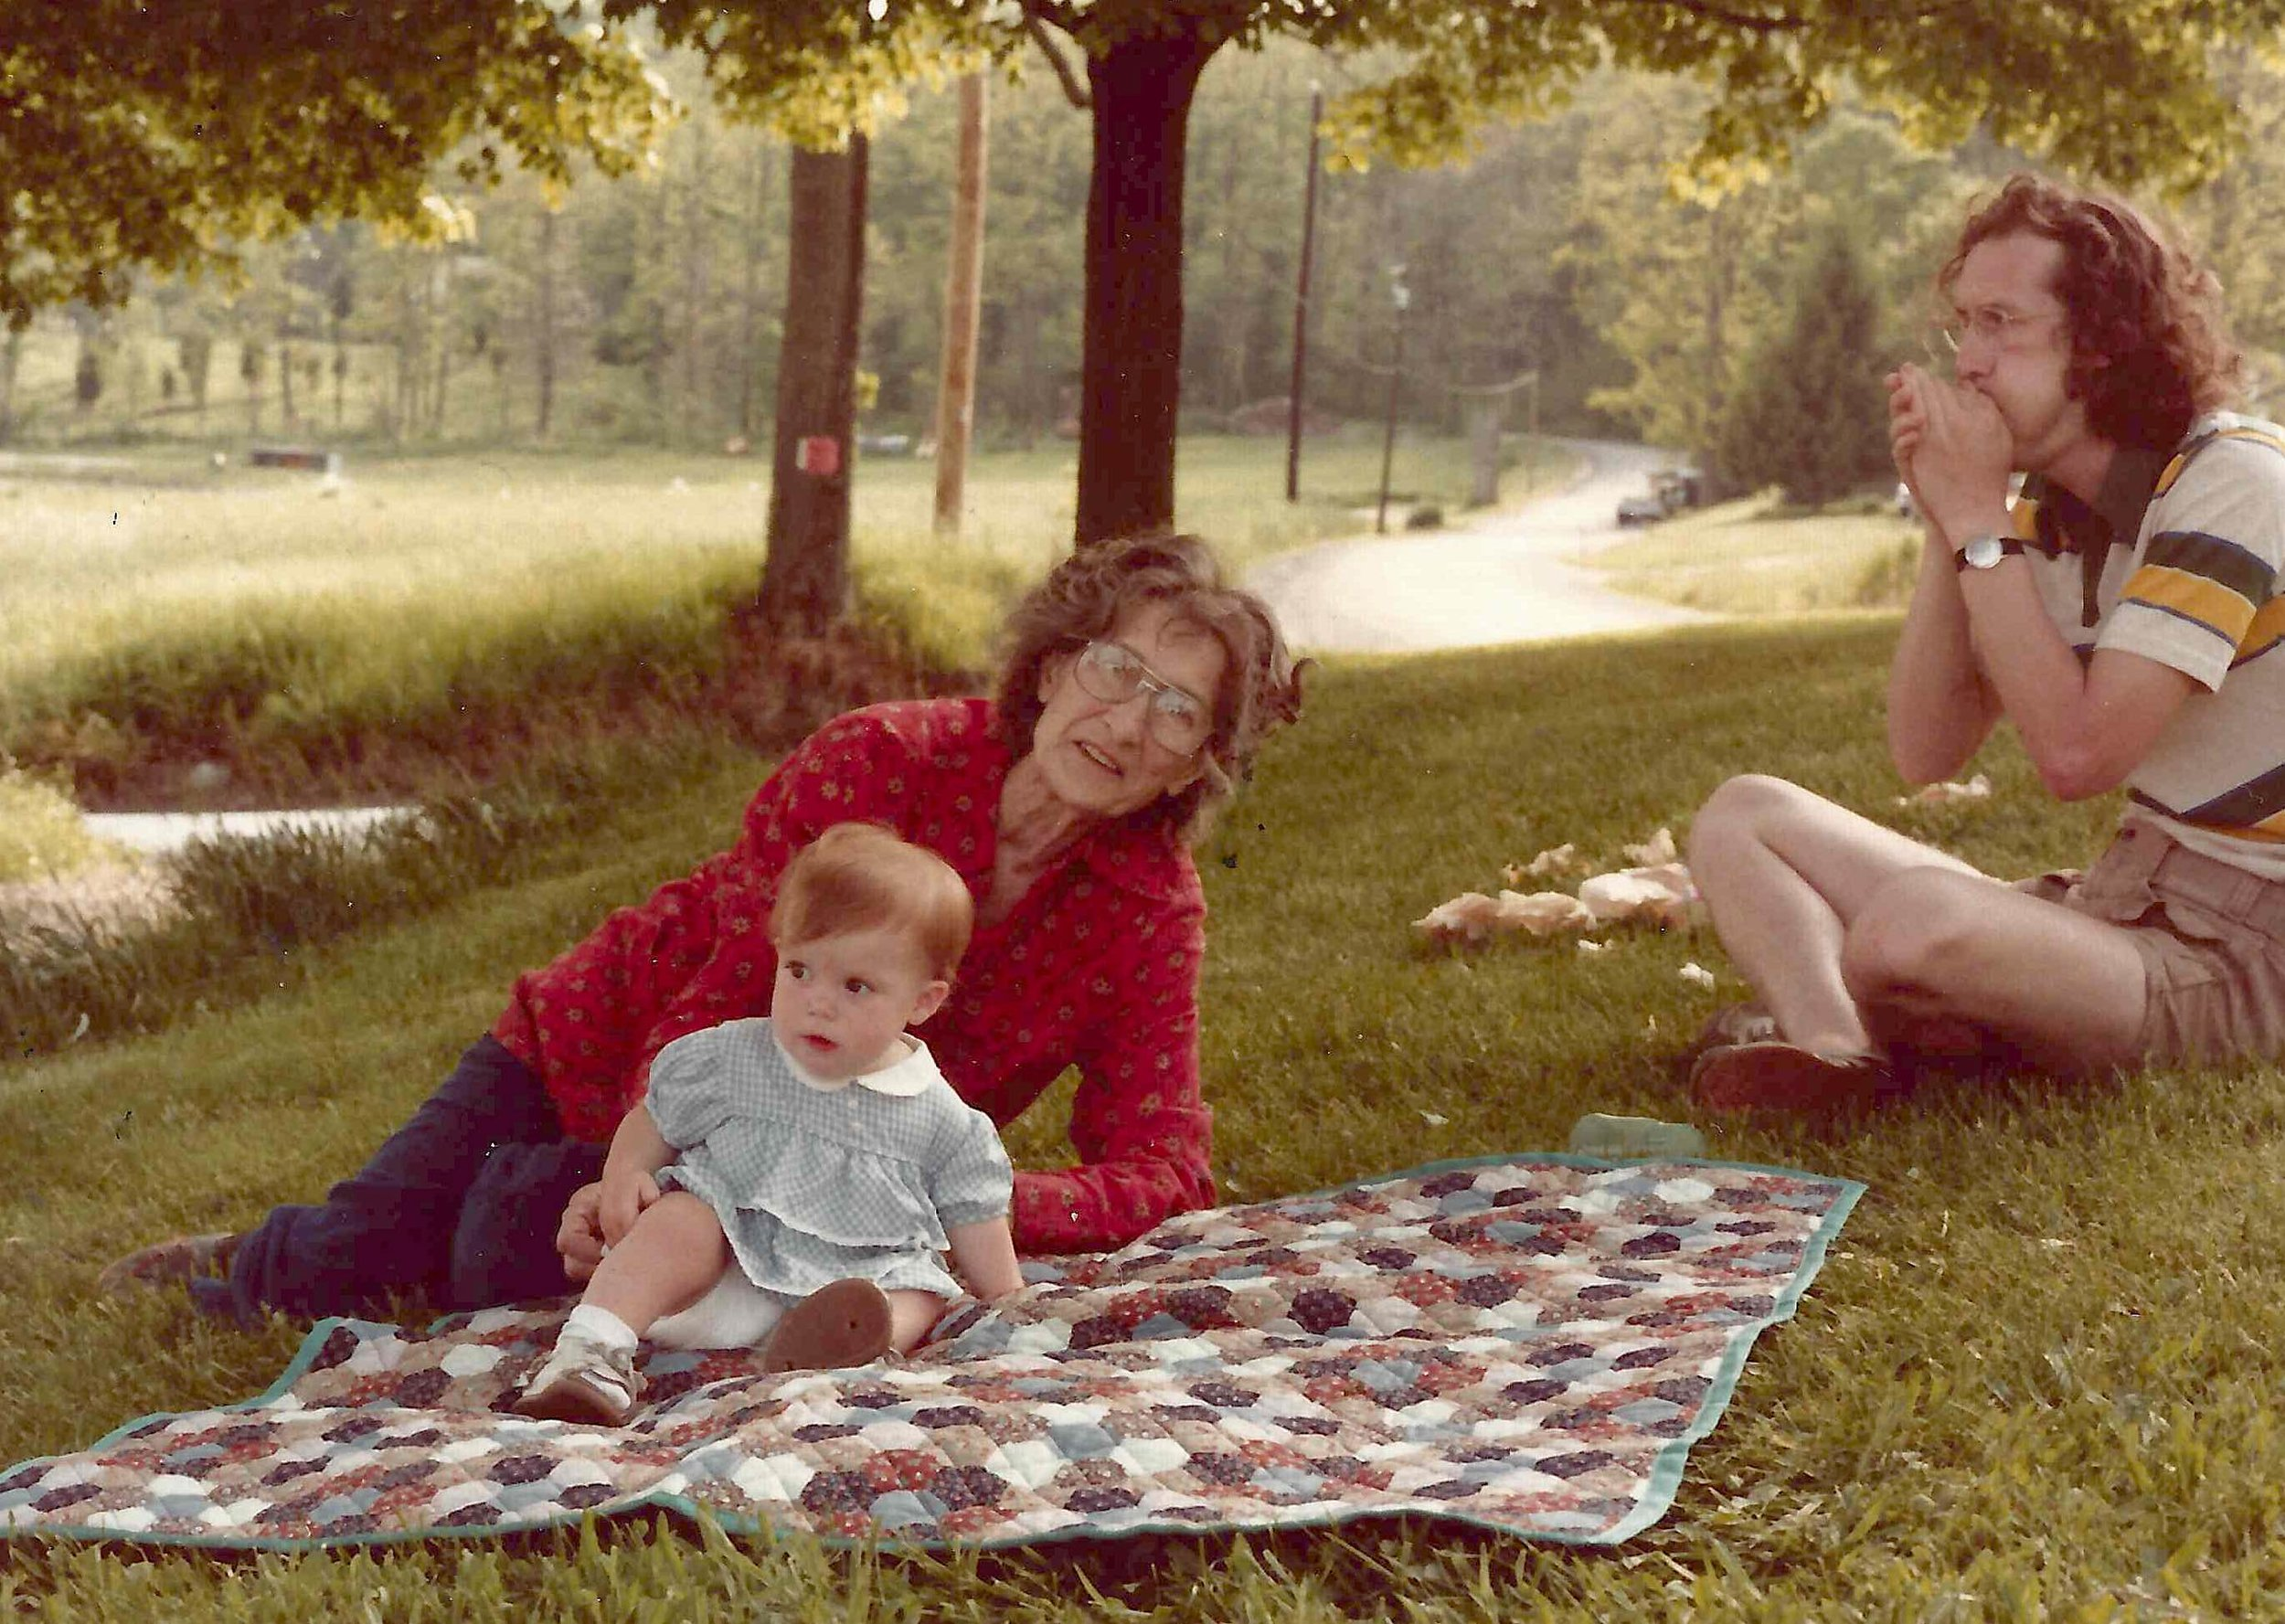 Virginia Bartow in 1981 with me and my father Charles Hardy at her farm in Hope New Jersey.